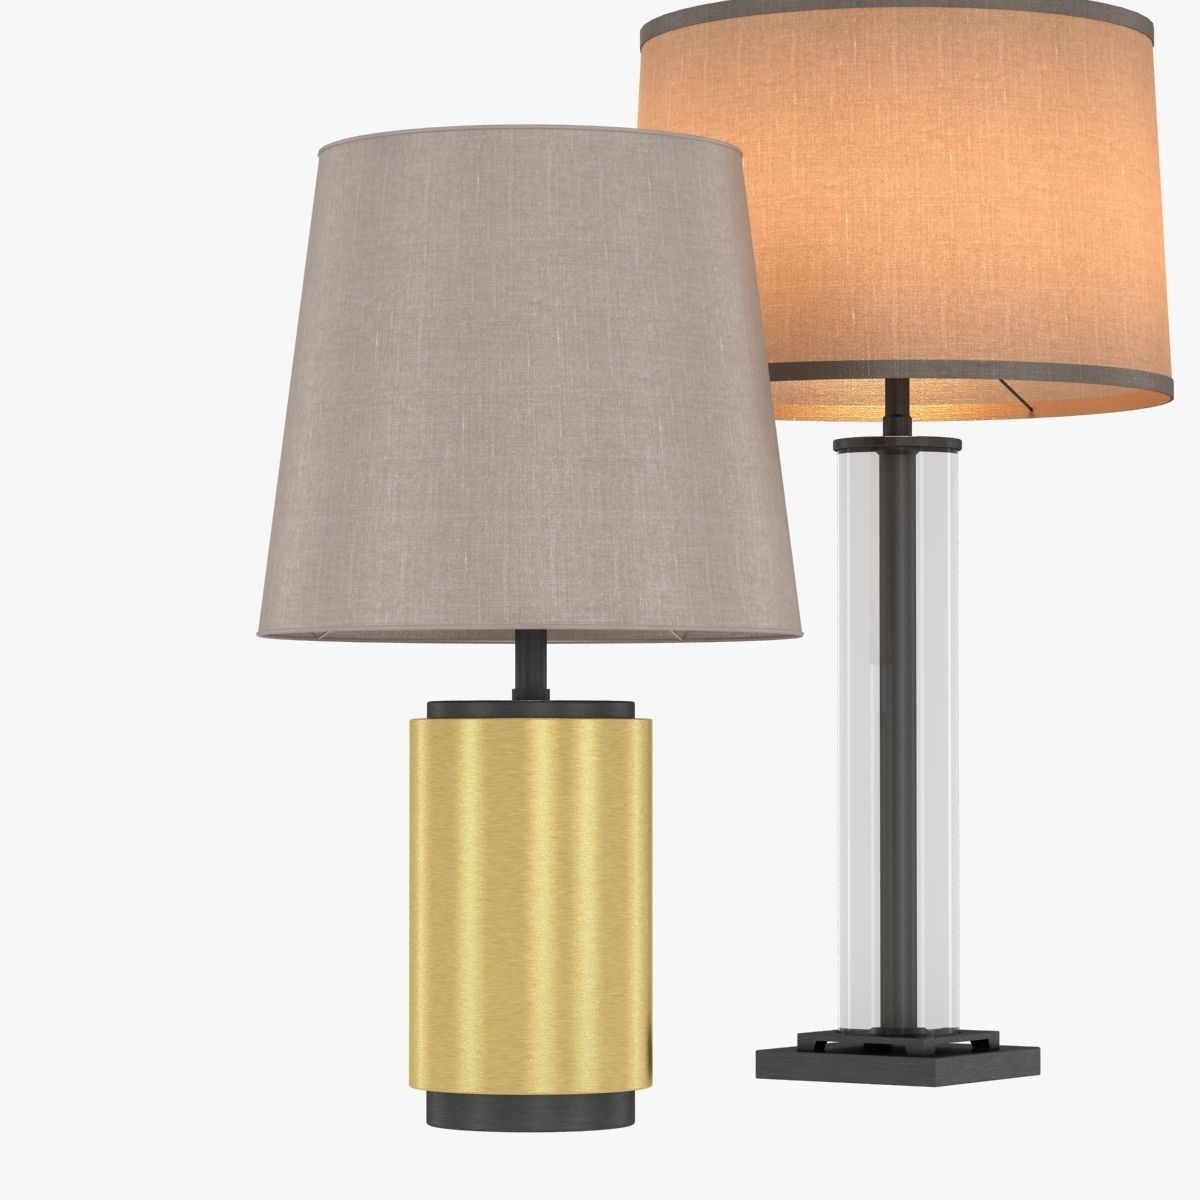 Small glass table lamps -  Restoration Hardware French Column Glass Table Lamp 3d Model Max Obj 3ds Fbx Mtl 2